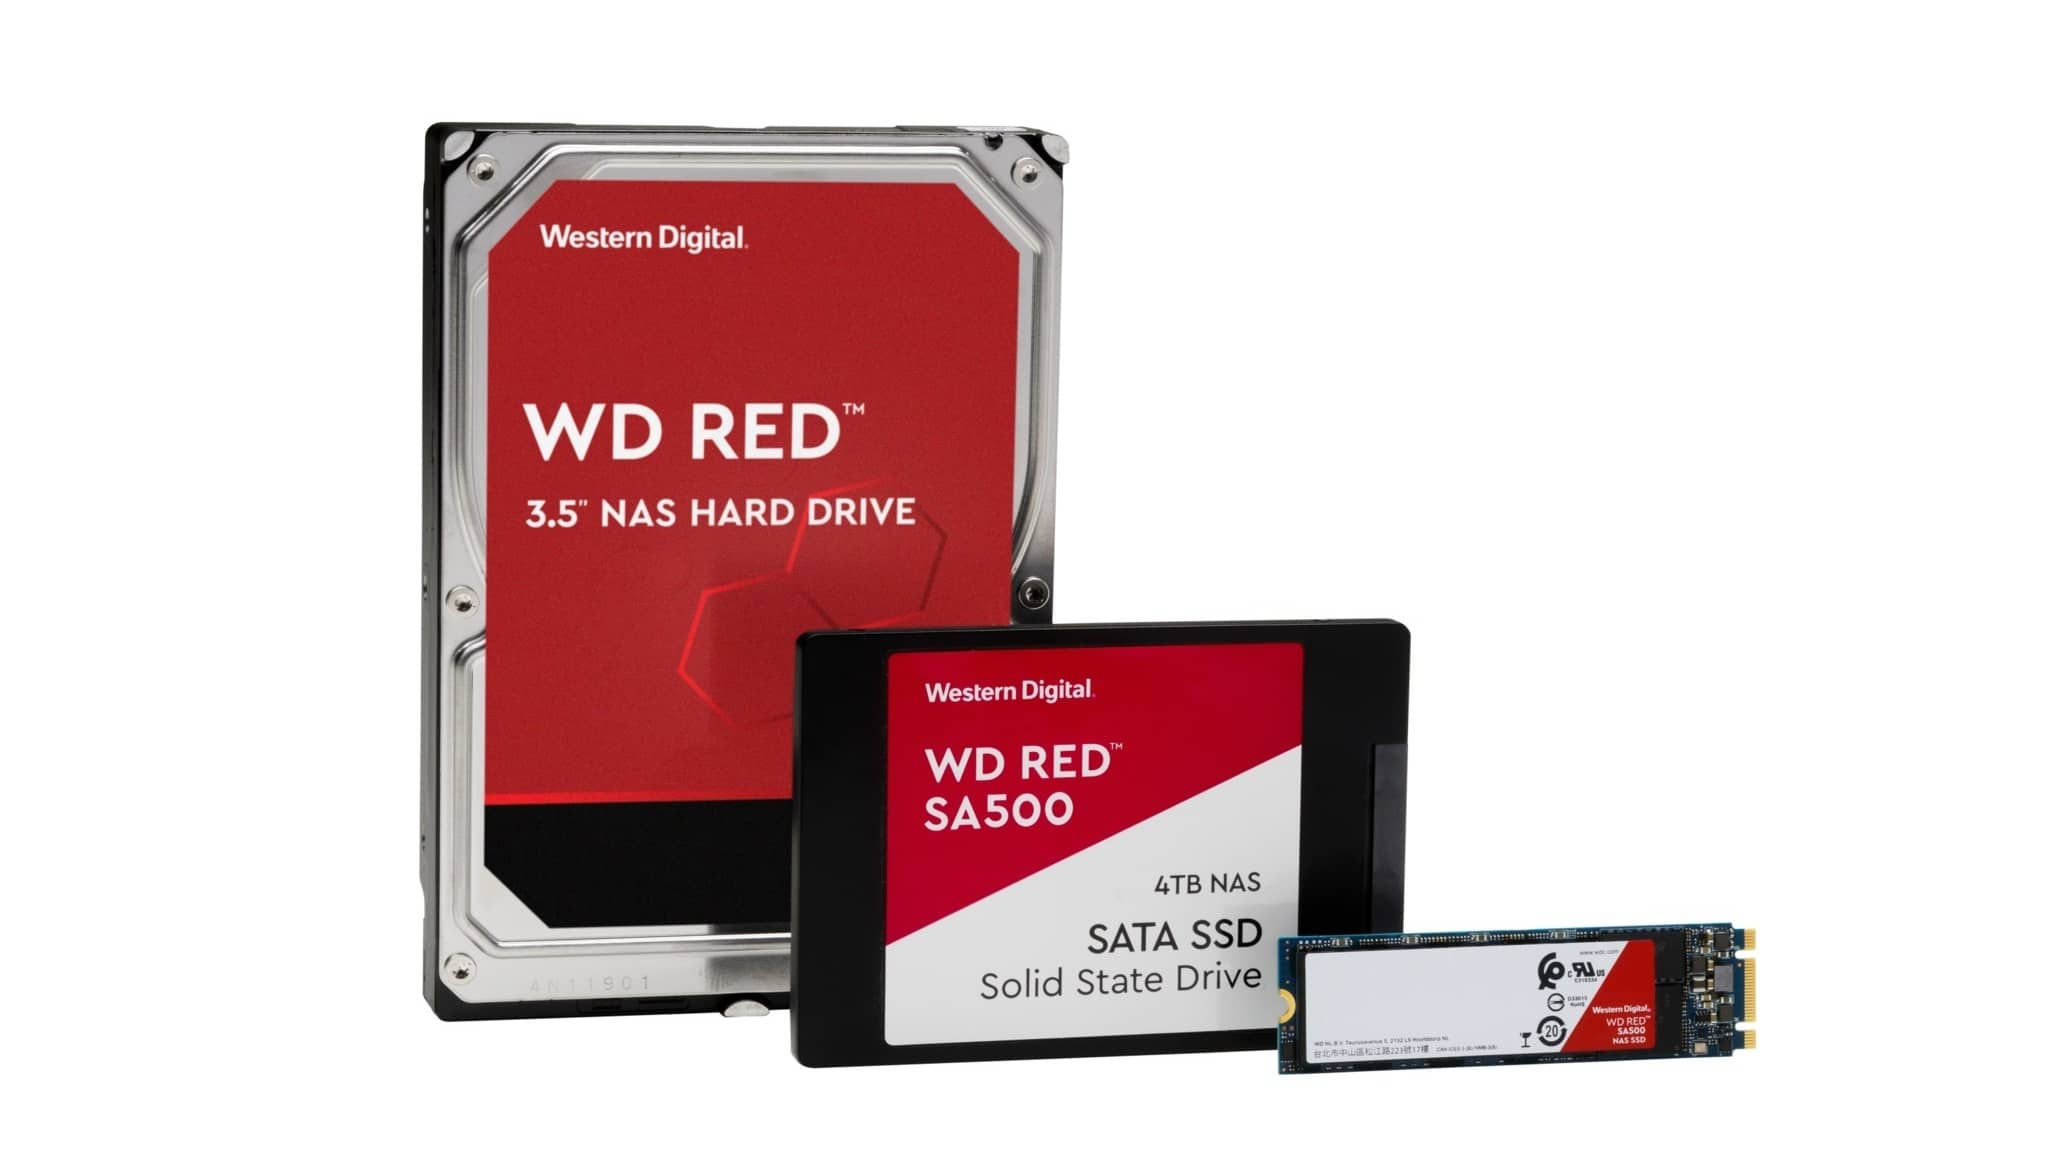 NEW WD RED SSD HDD